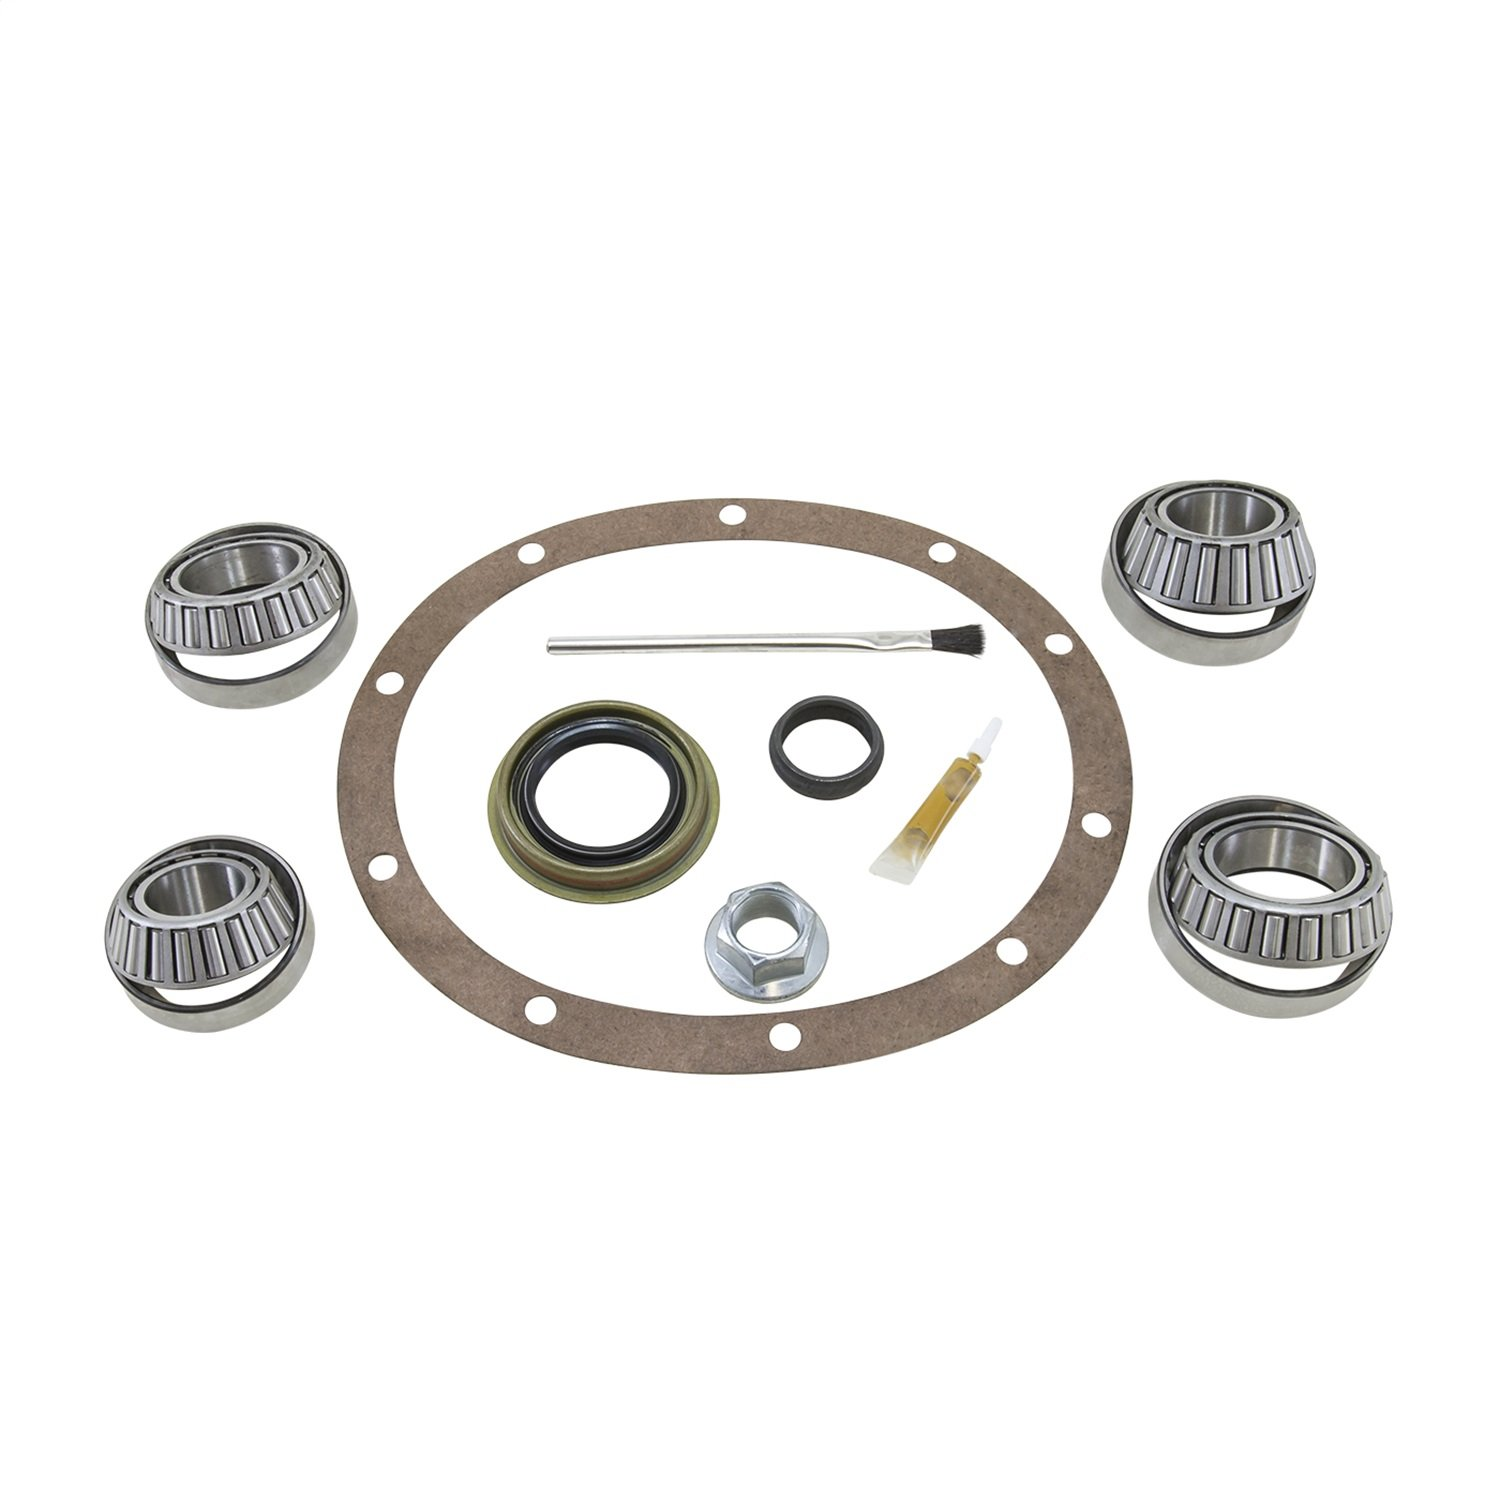 USA Standard Gear (ZBKM35) Bearing Kit for AMC Model 35 Rear Differential by USA Standard Gear